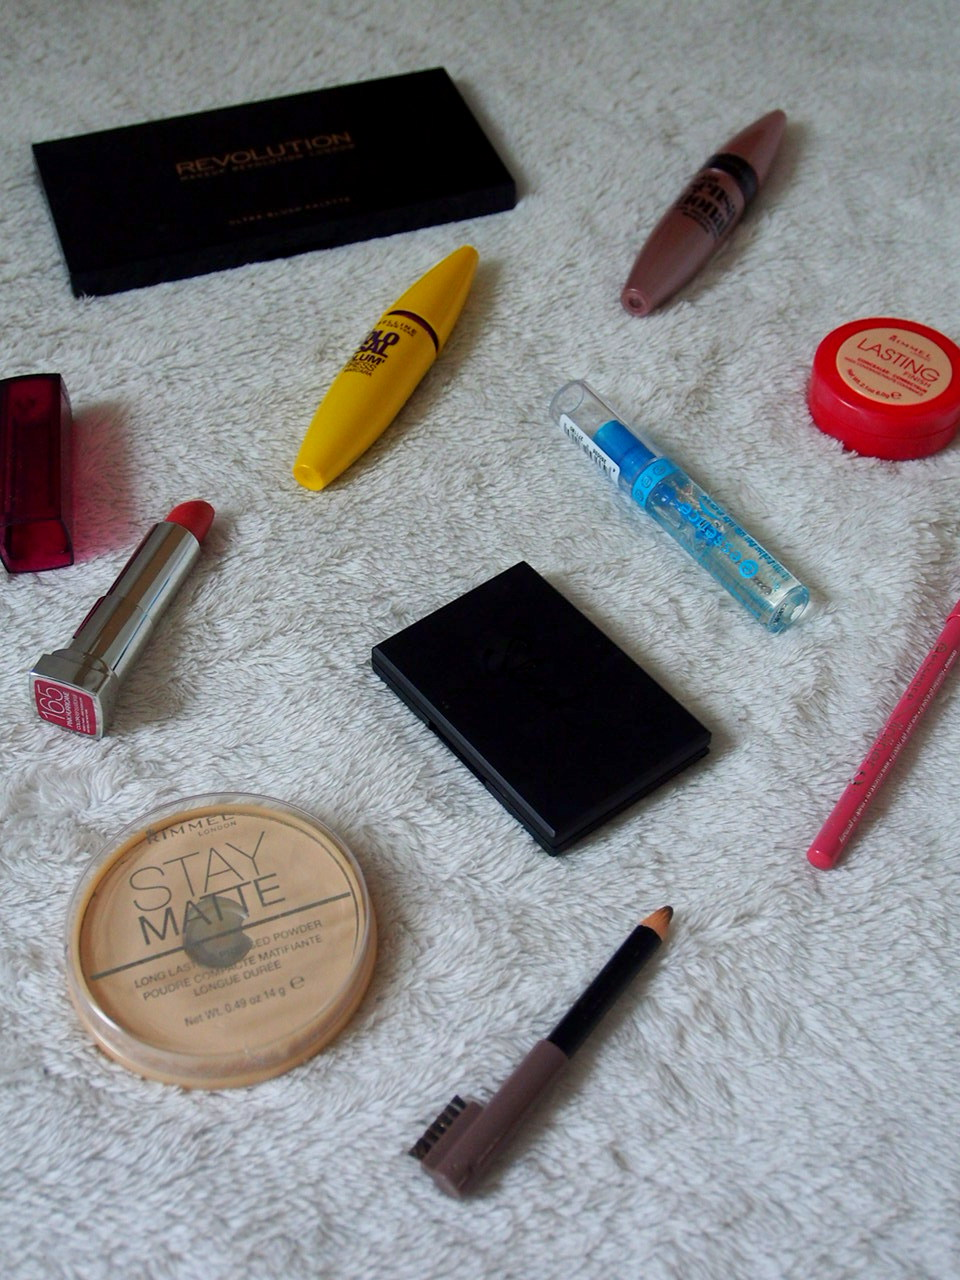 My Current Makeup Routine.